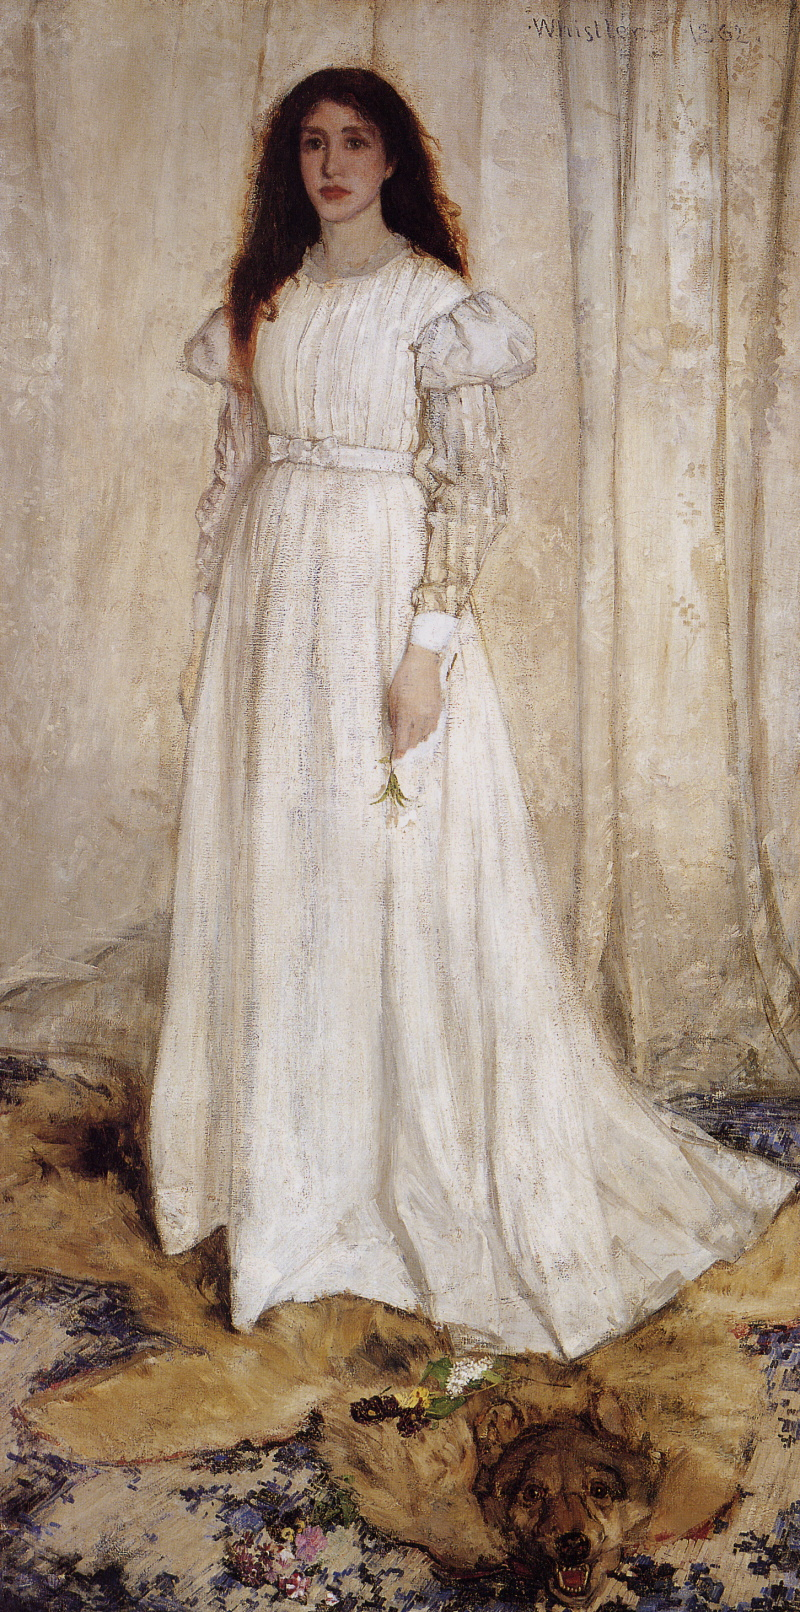 James Whistler Symphony_in_White no 1 (The White Girl) 1862